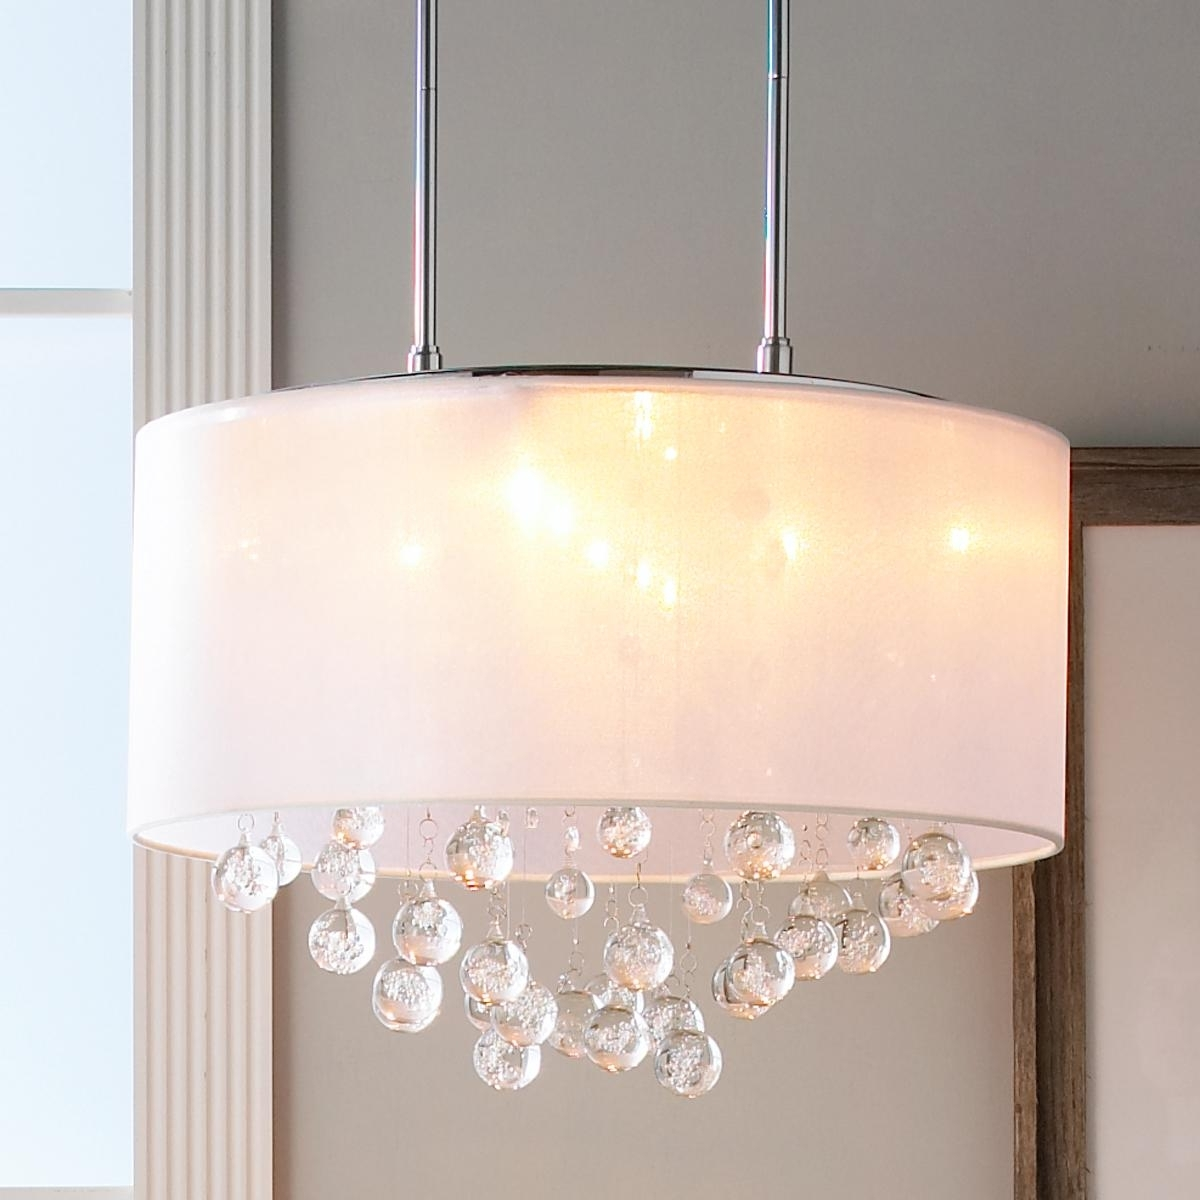 Popular Metal Ball Candle Chandeliers Intended For Appealing Lamp Shade Chandelier Beautiful Candle Light With The Help (View 16 of 20)